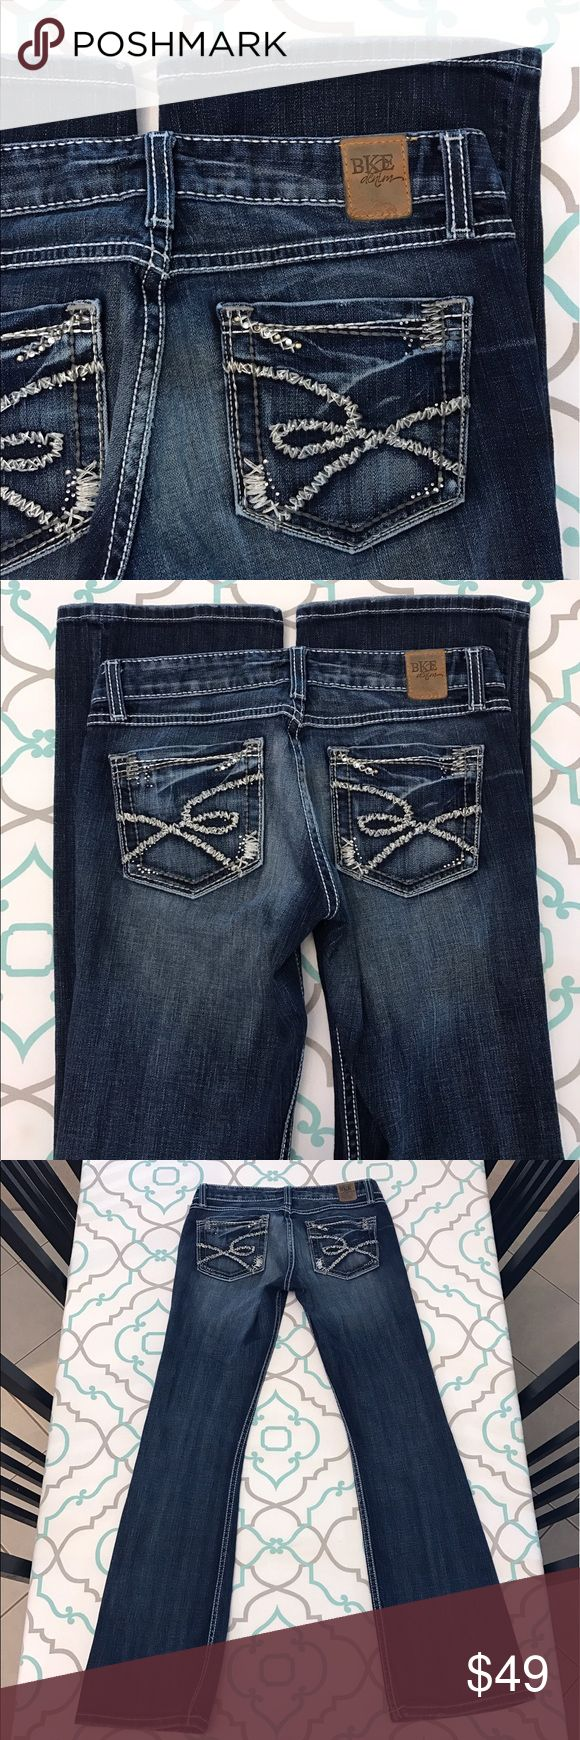 """💙👖Gorgeous BKE Jeans👖💙29 7/8 32"""" Bling! Dark! 💙👖Gorgeous BKE Jeans👖💙 Size 29 (7/8). 32.25"""" Inseam. 8"""" Rise. 14.75"""" Across Back. Great Stretch. Dark Blue Wash. Medium Fading. Heavy Whiskering. White Thick Stitching. Silver & Grey Details & touch of Bling on the Pockets! Very Good Condition.  Just a tiny bit of Fray. Bootcut! Awesome! BKE! The Buckle! Ask me any questions! : ) BKE Jeans Boot Cut"""